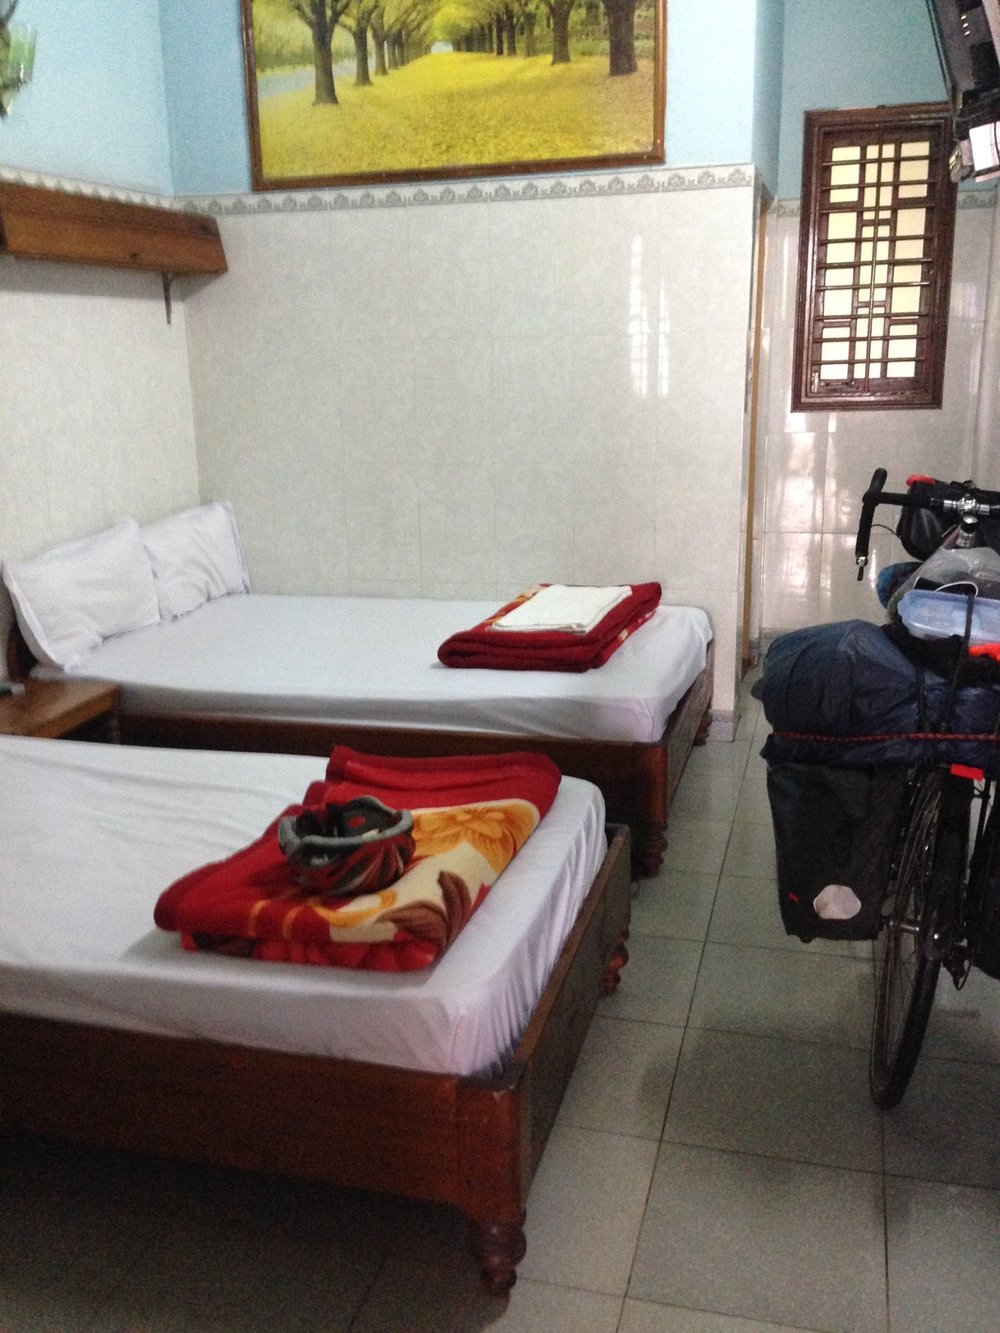 I was relieved to finally reach A Luoi and find a guesthouse. What an incredibly difficult and challenging day of cycling.